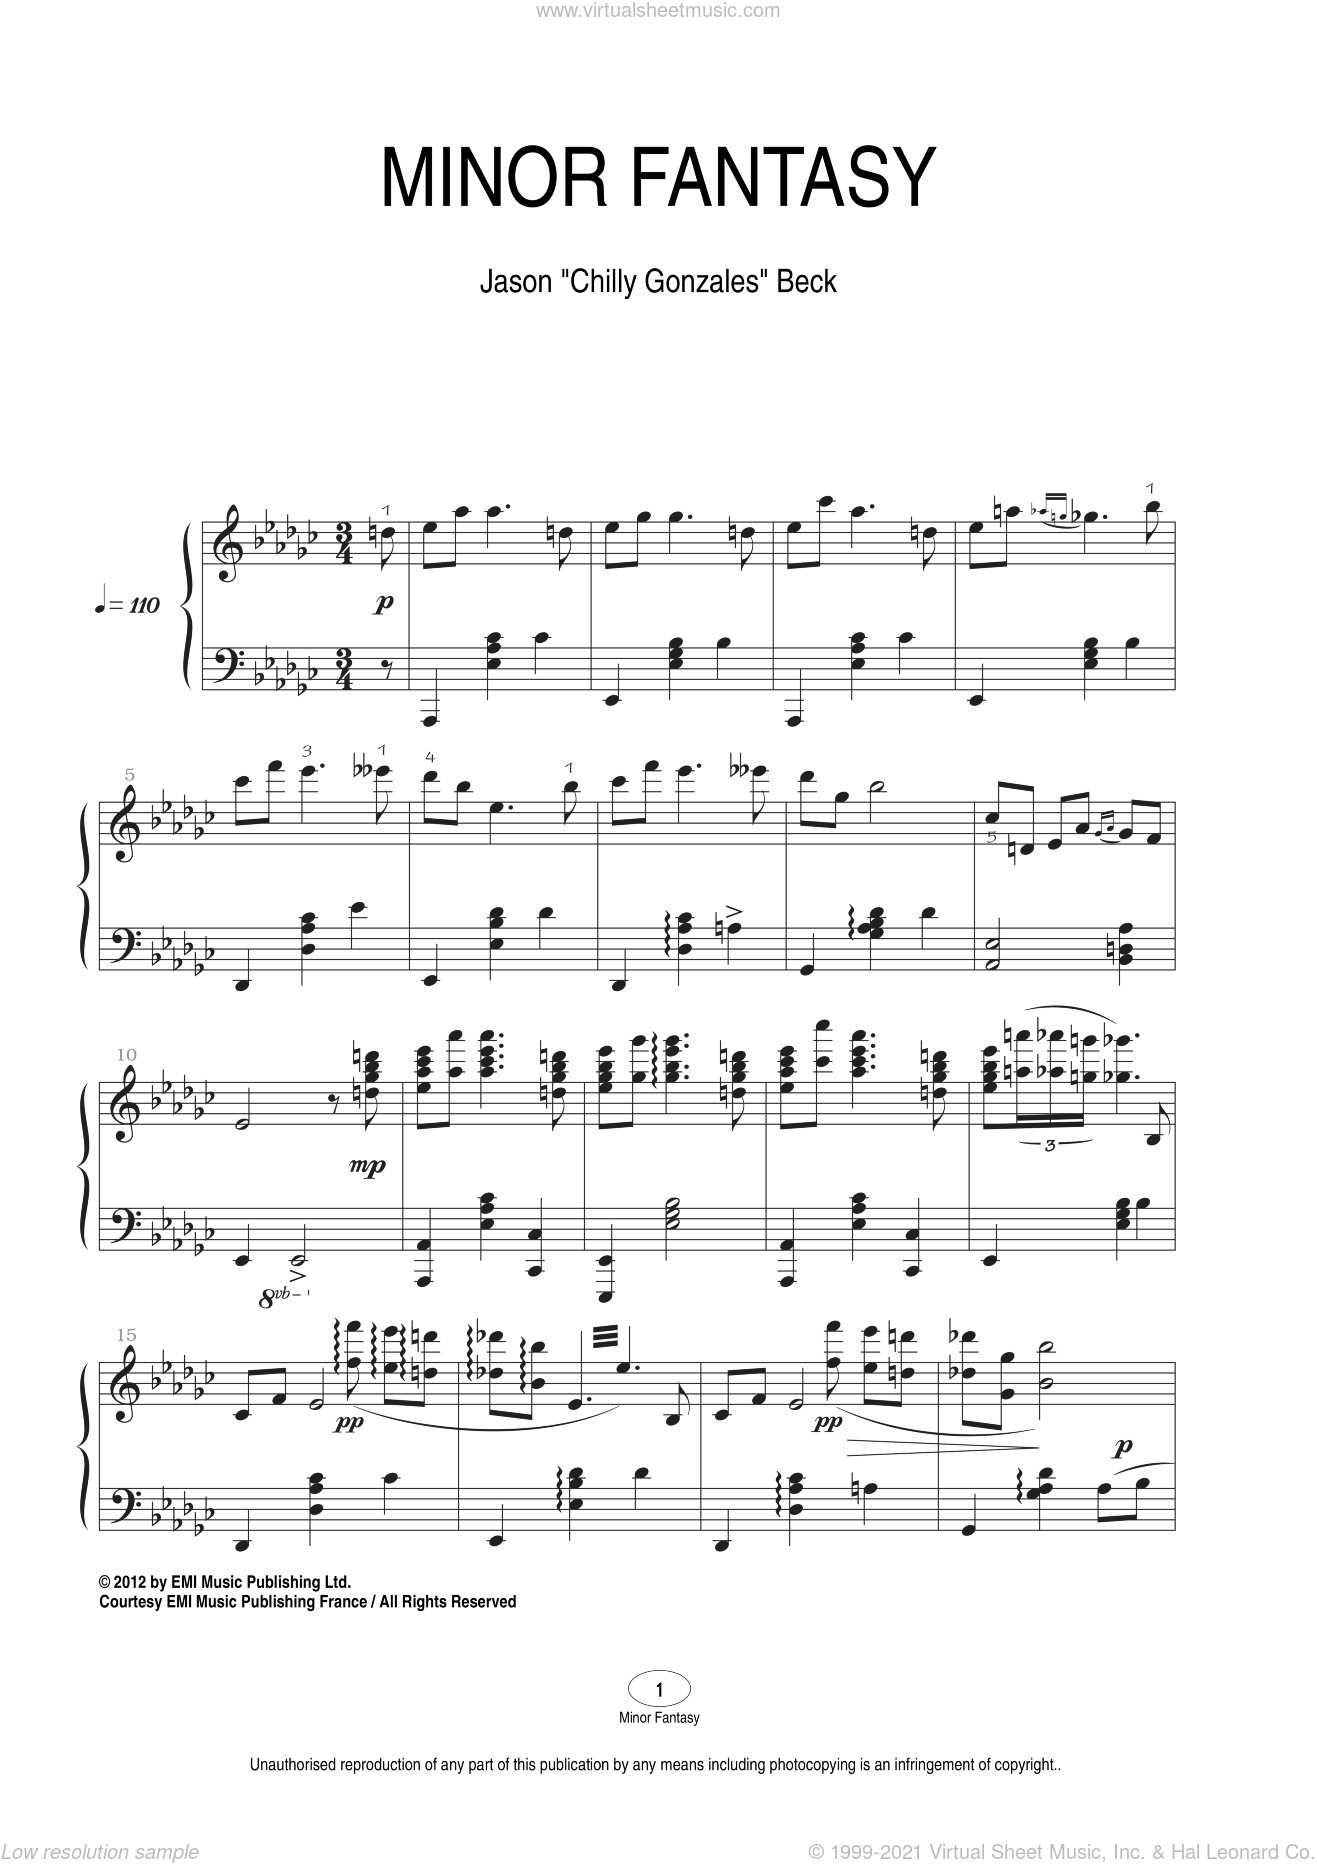 Minor Fantasy sheet music for piano solo by Chilly Gonzales and Jason Beck, classical score, intermediate skill level